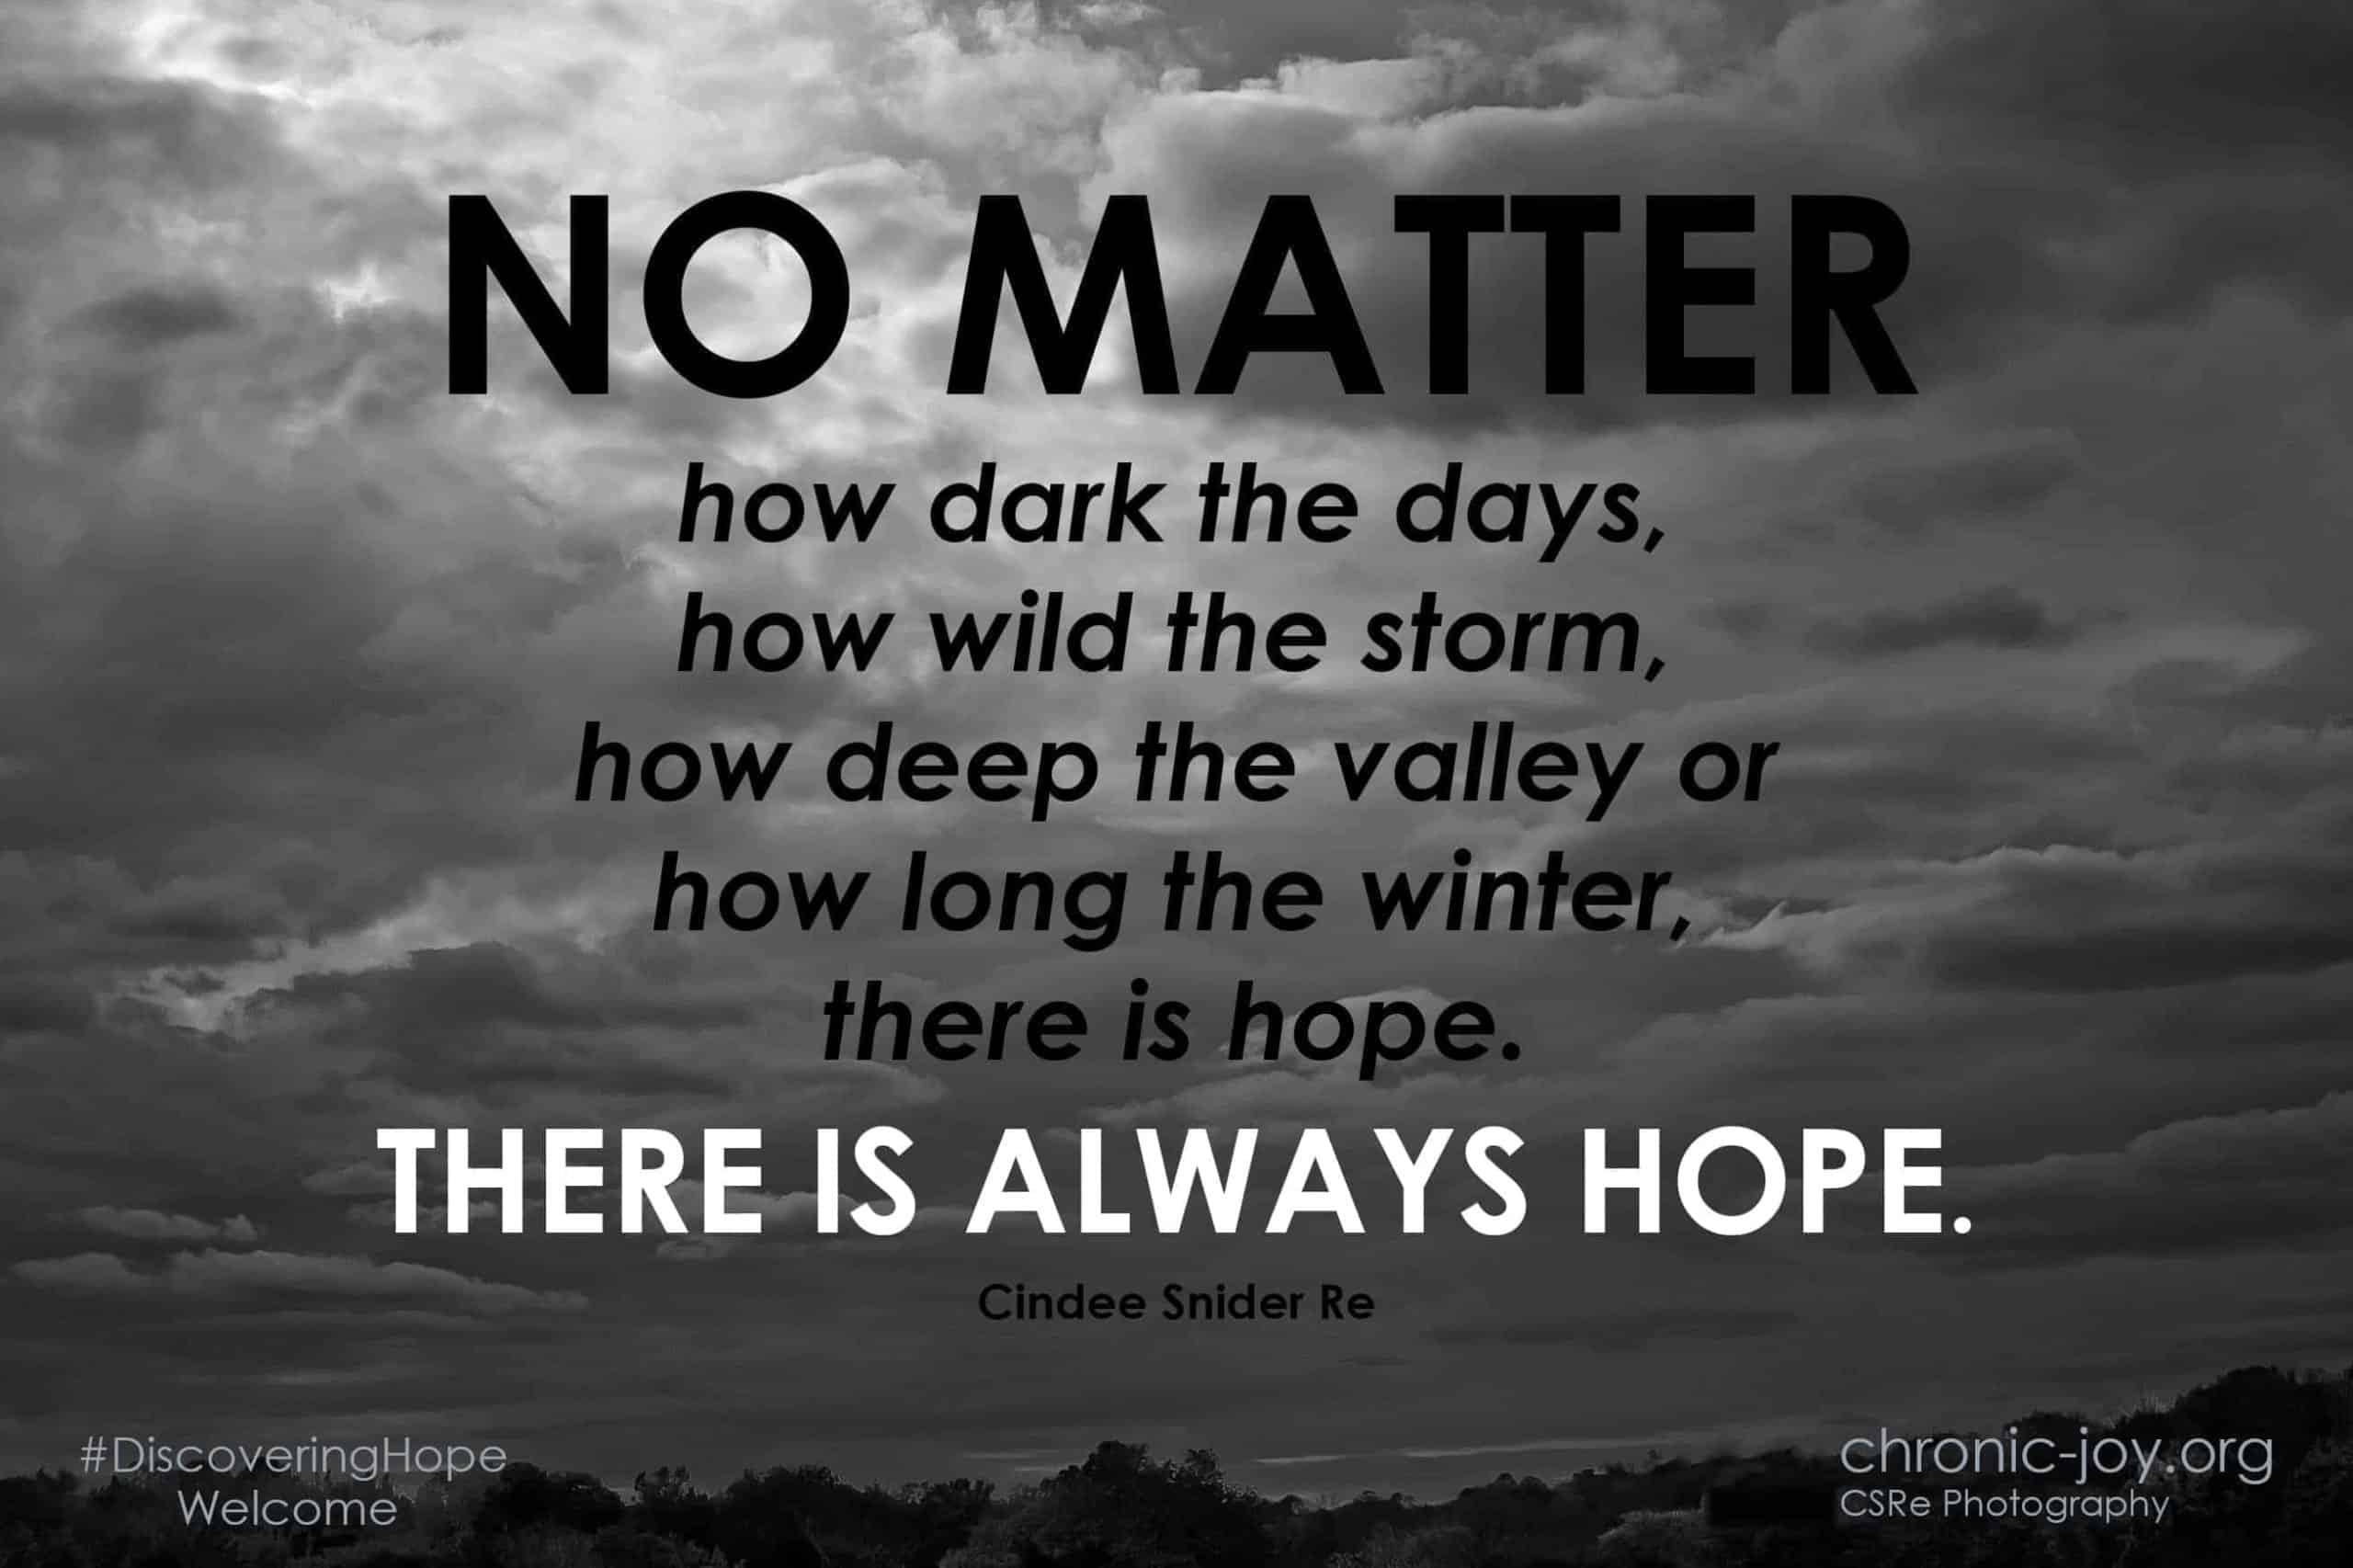 No matter how dark the days, there is HOPE!